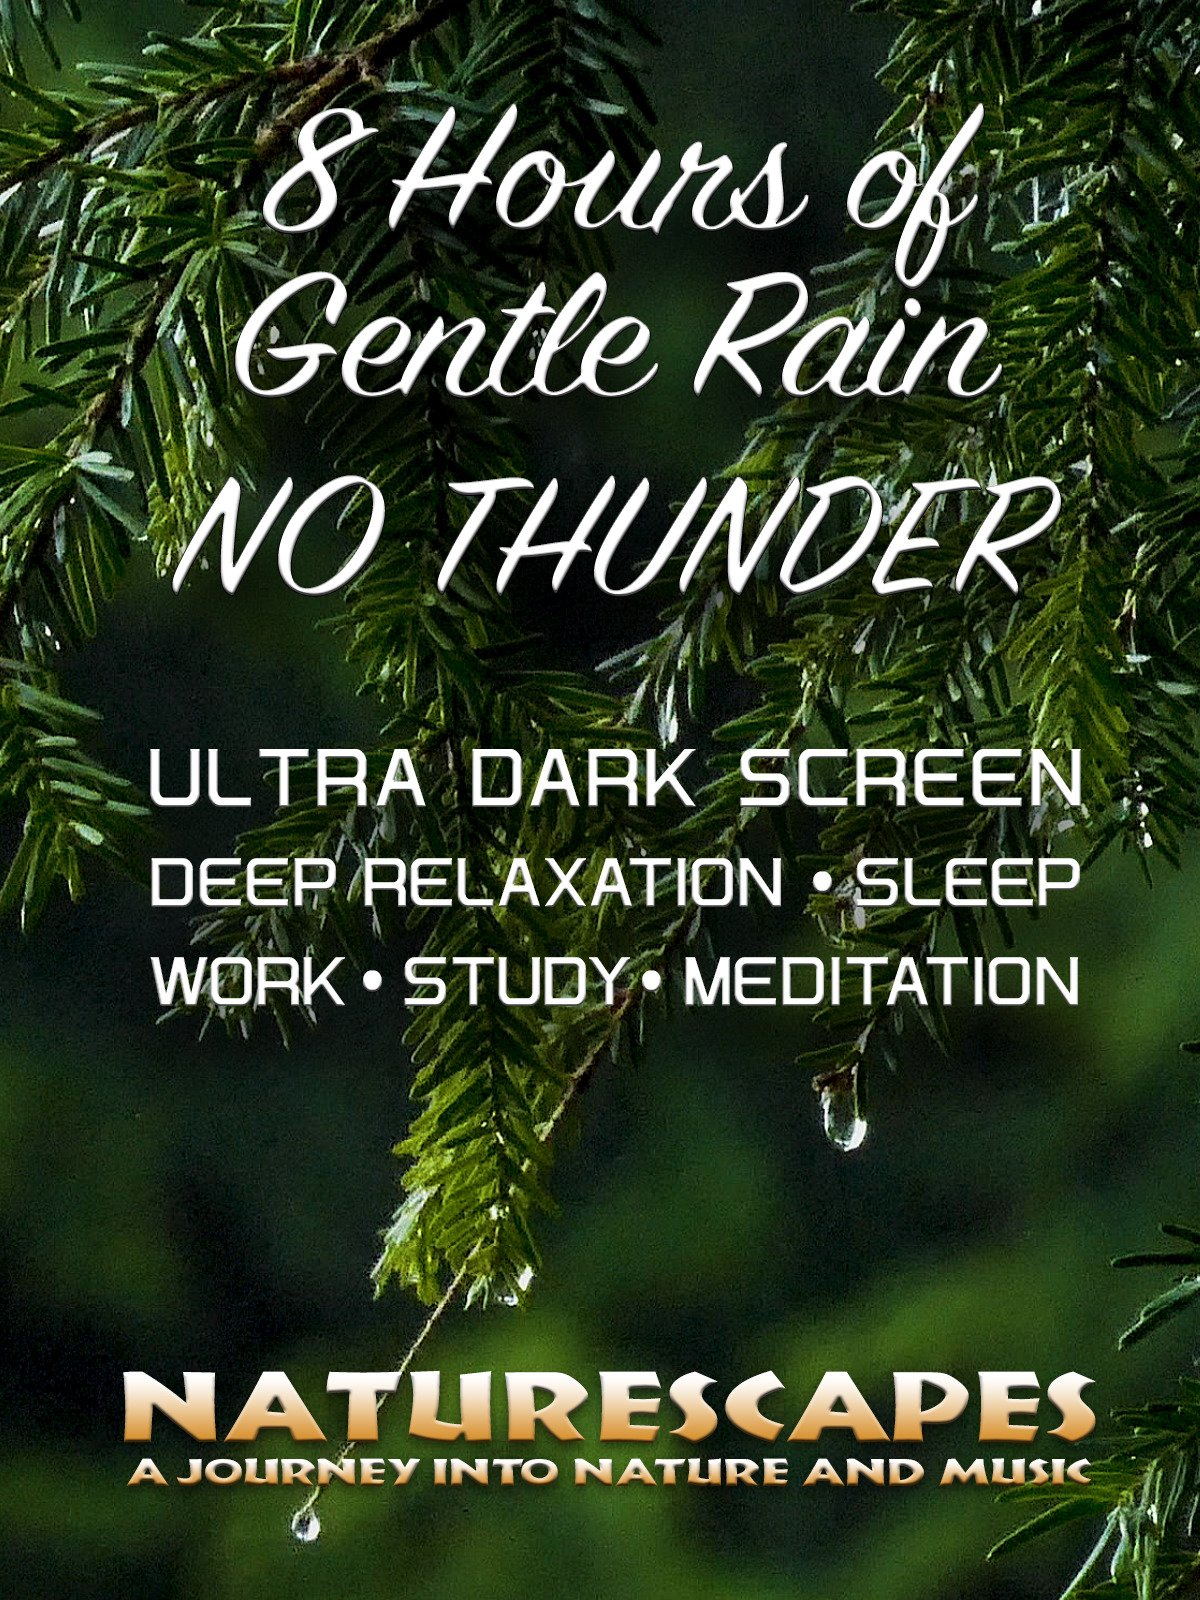 8 Hours of Gentle Rain No Thunder Ultra Dark Screen, Deep Relaxation Sleep Work Study Meditation